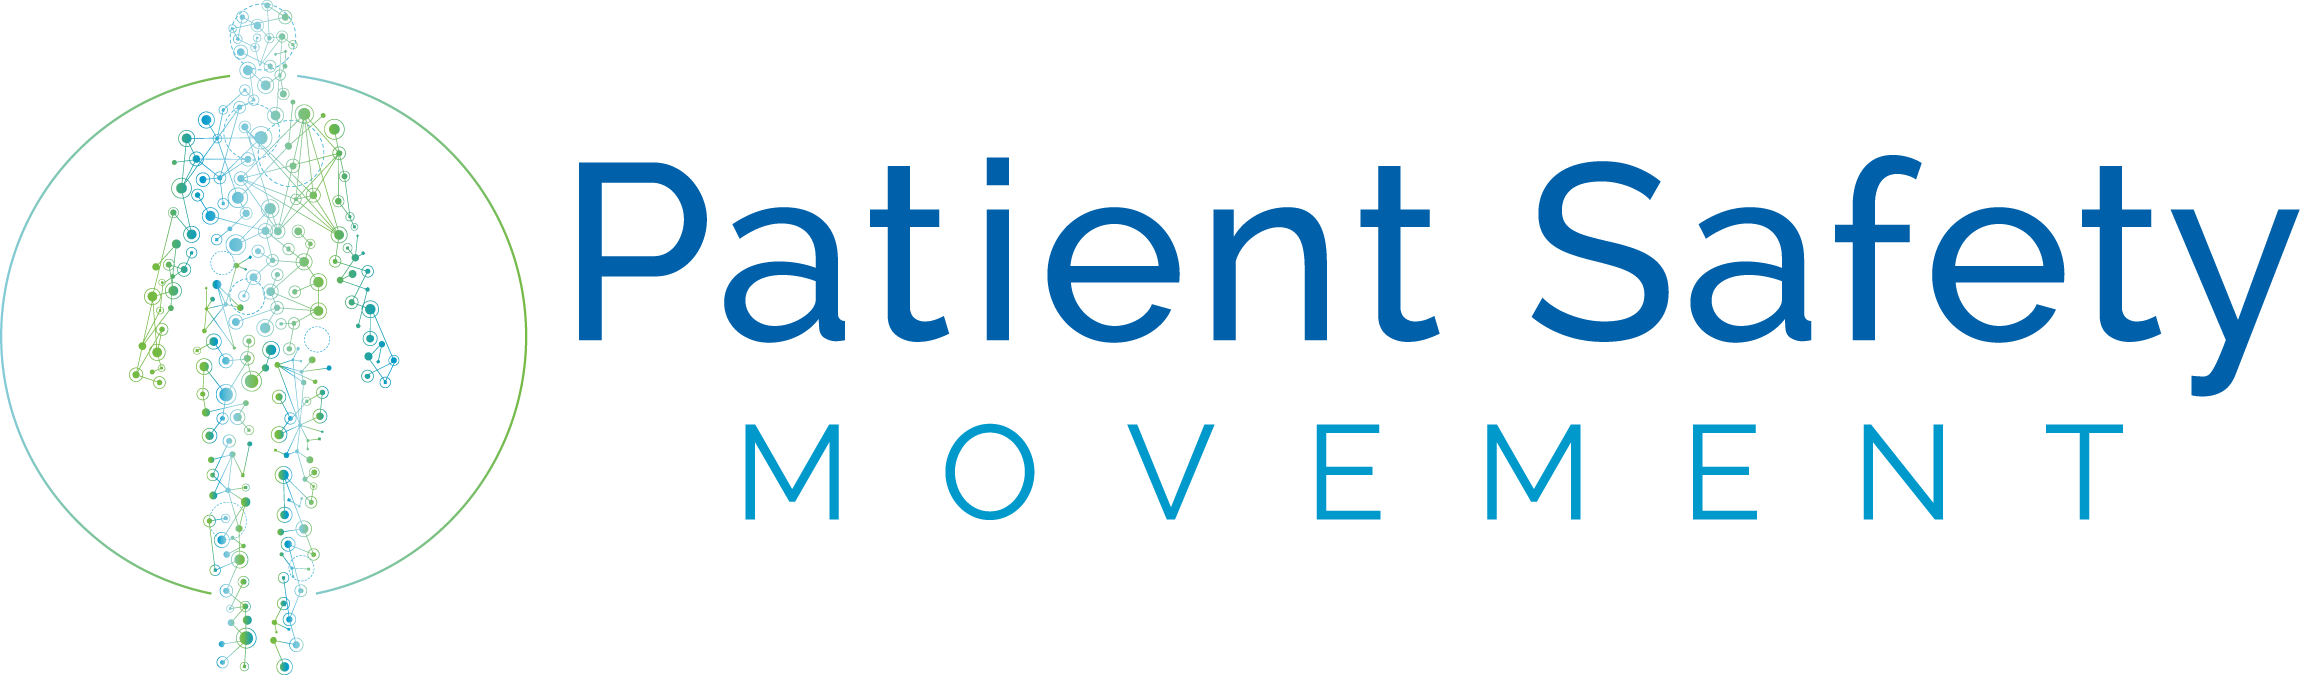 The Patient Safety Movement logo